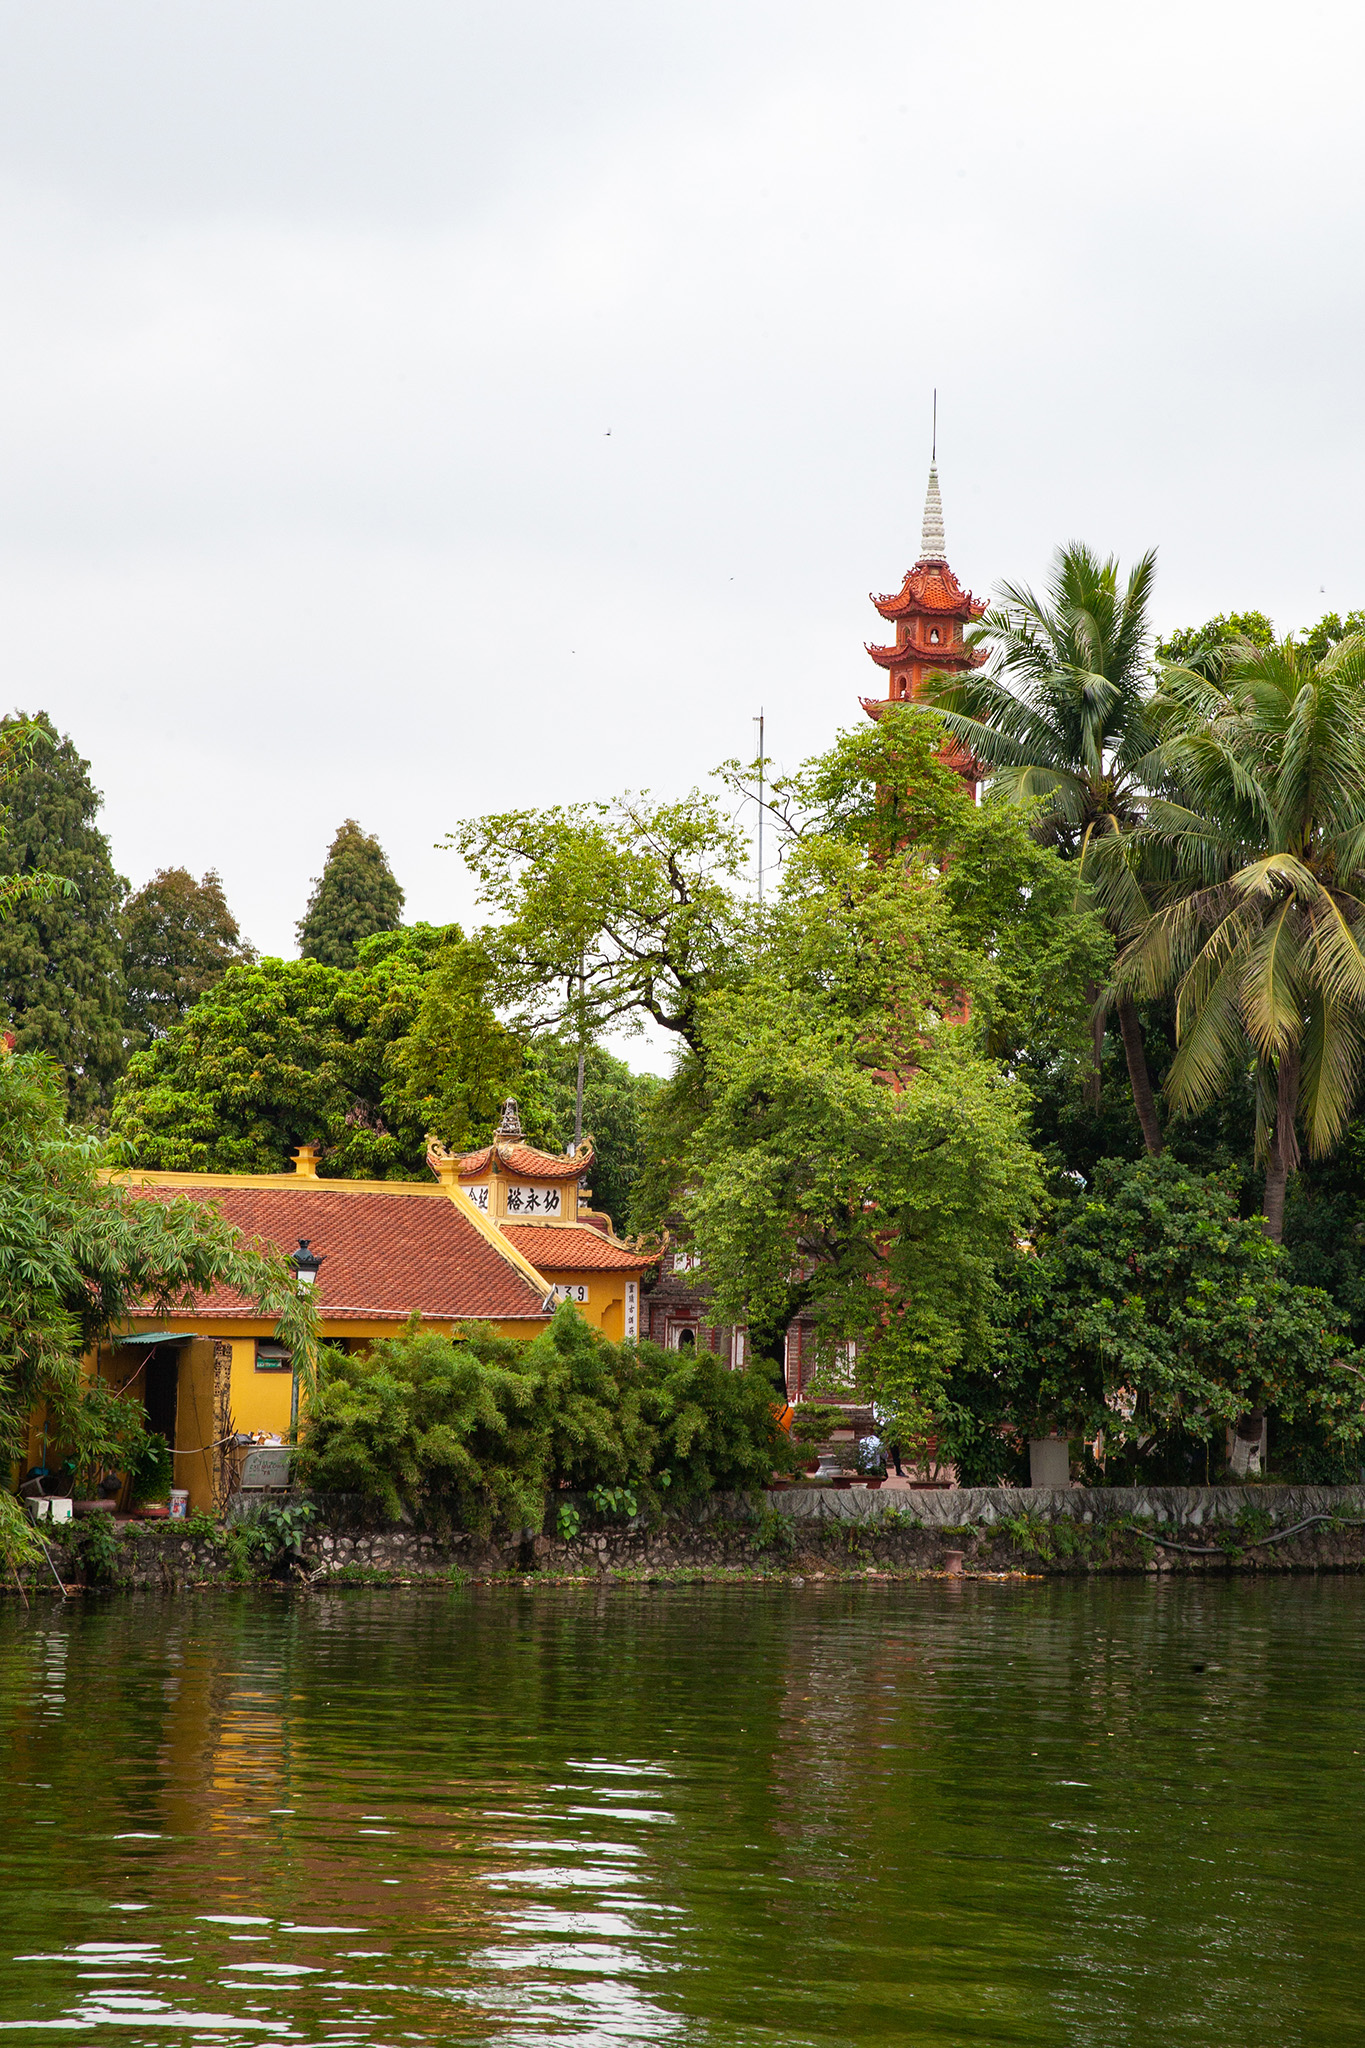 Approaching the oldest Buddhist temple in Hanoi, Trấn Quốc Pagoda